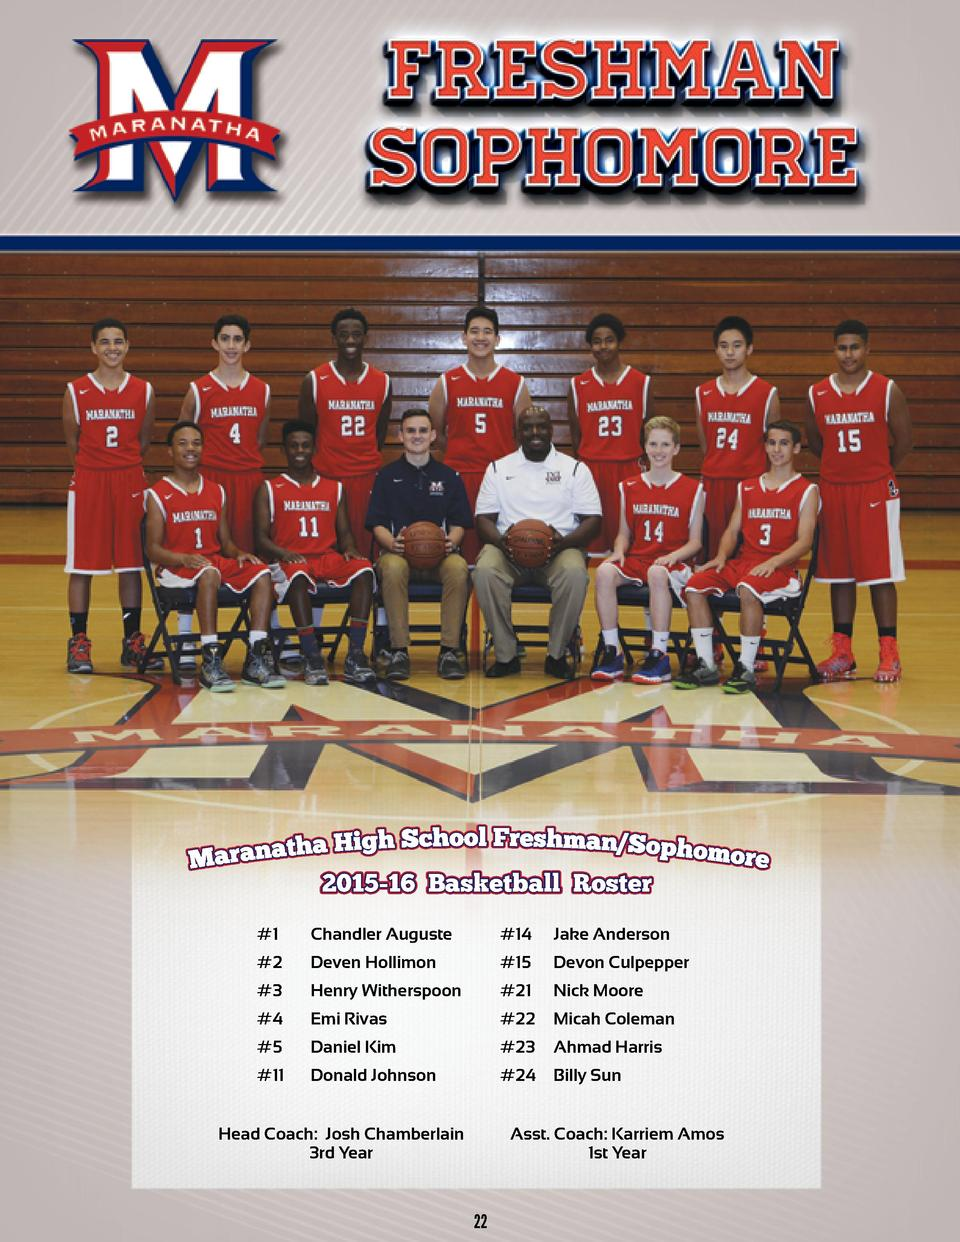 2015-16 Basketball Roster 2015-16   1 Chandler Auguste Mason Swinnie  2 Deven Hollimon   14  15  15  Jake Anderson Tevan K...